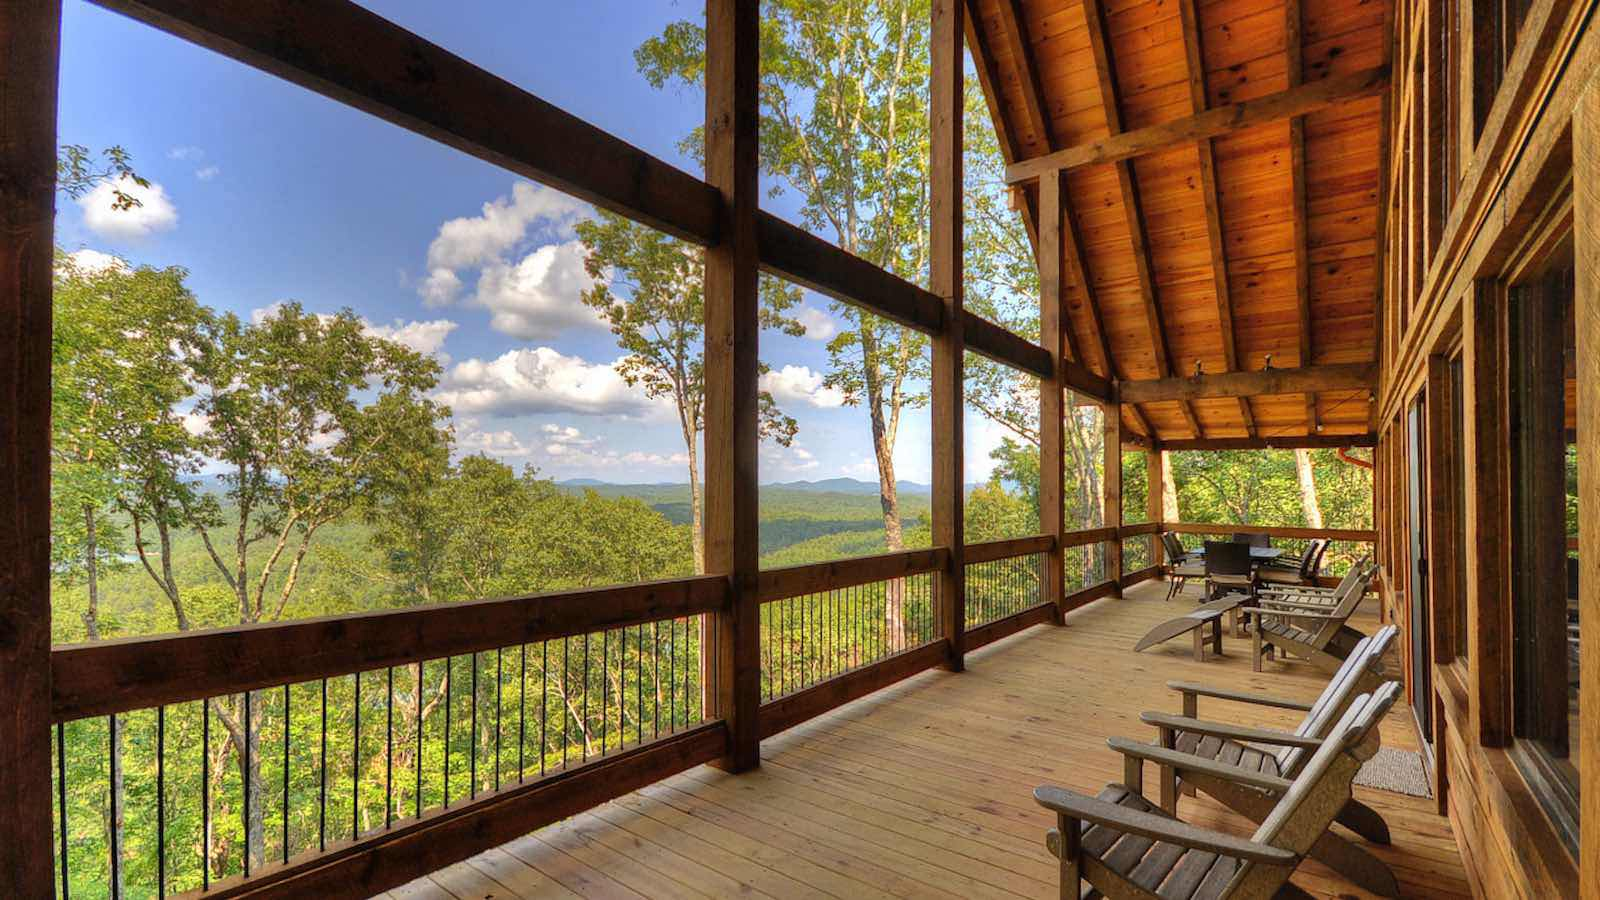 pro blue beyond ridge detailcabin georgia in cabins rentals cabin rental n ga above